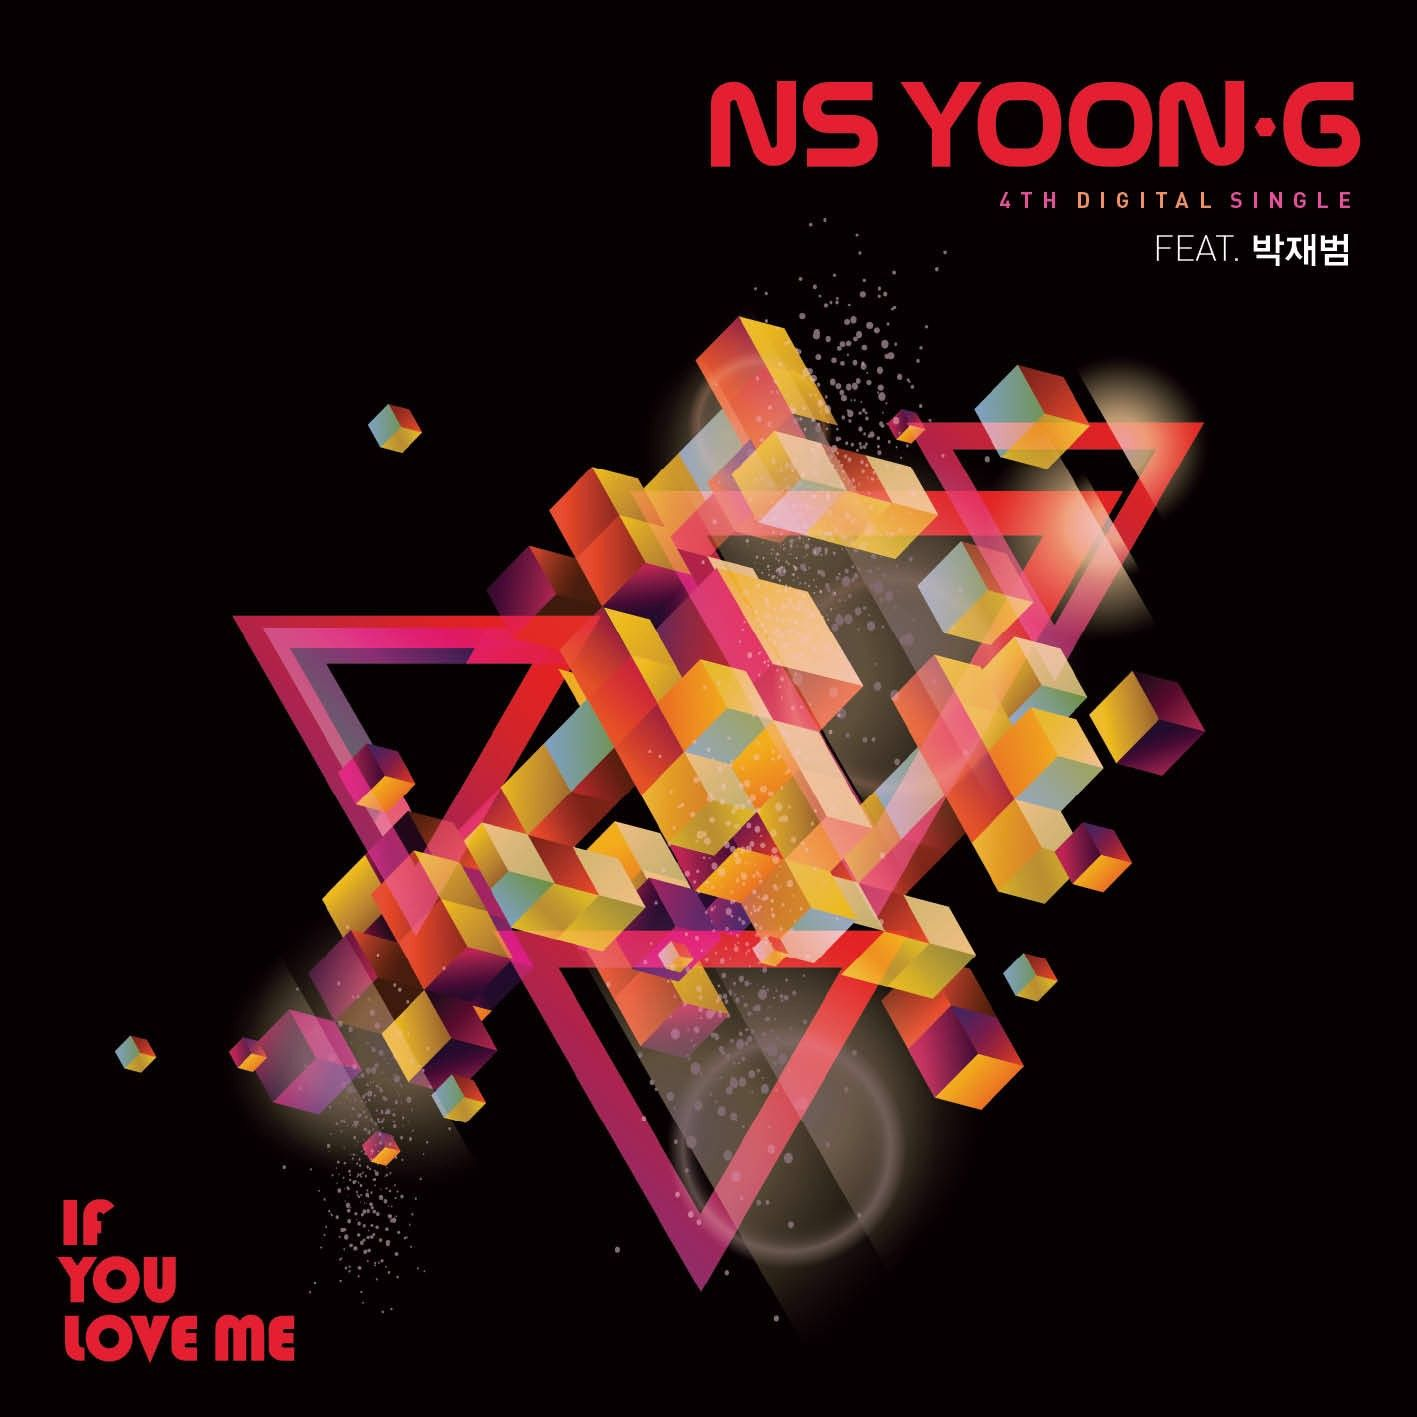 [Single] NS Yoon-G - If You Love Me (feat. Jay Park)